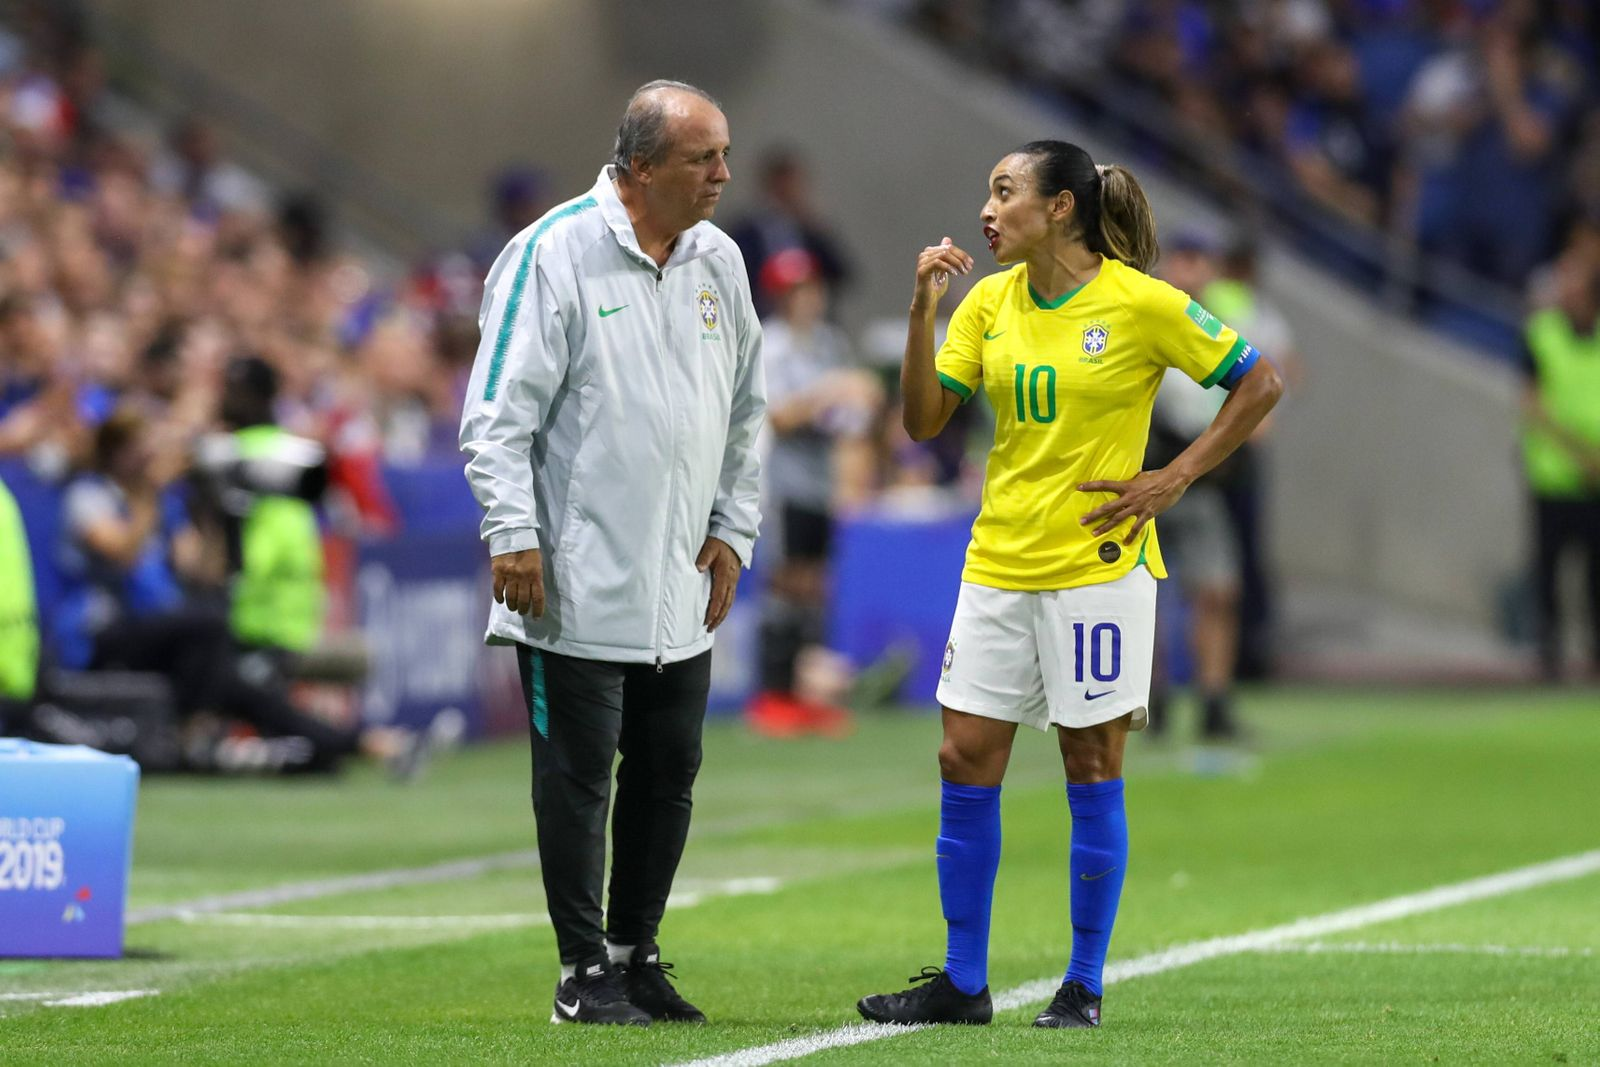 June 23 2019 Le Havre France Vadao and Marta of Brazil during match against France by the Eighth